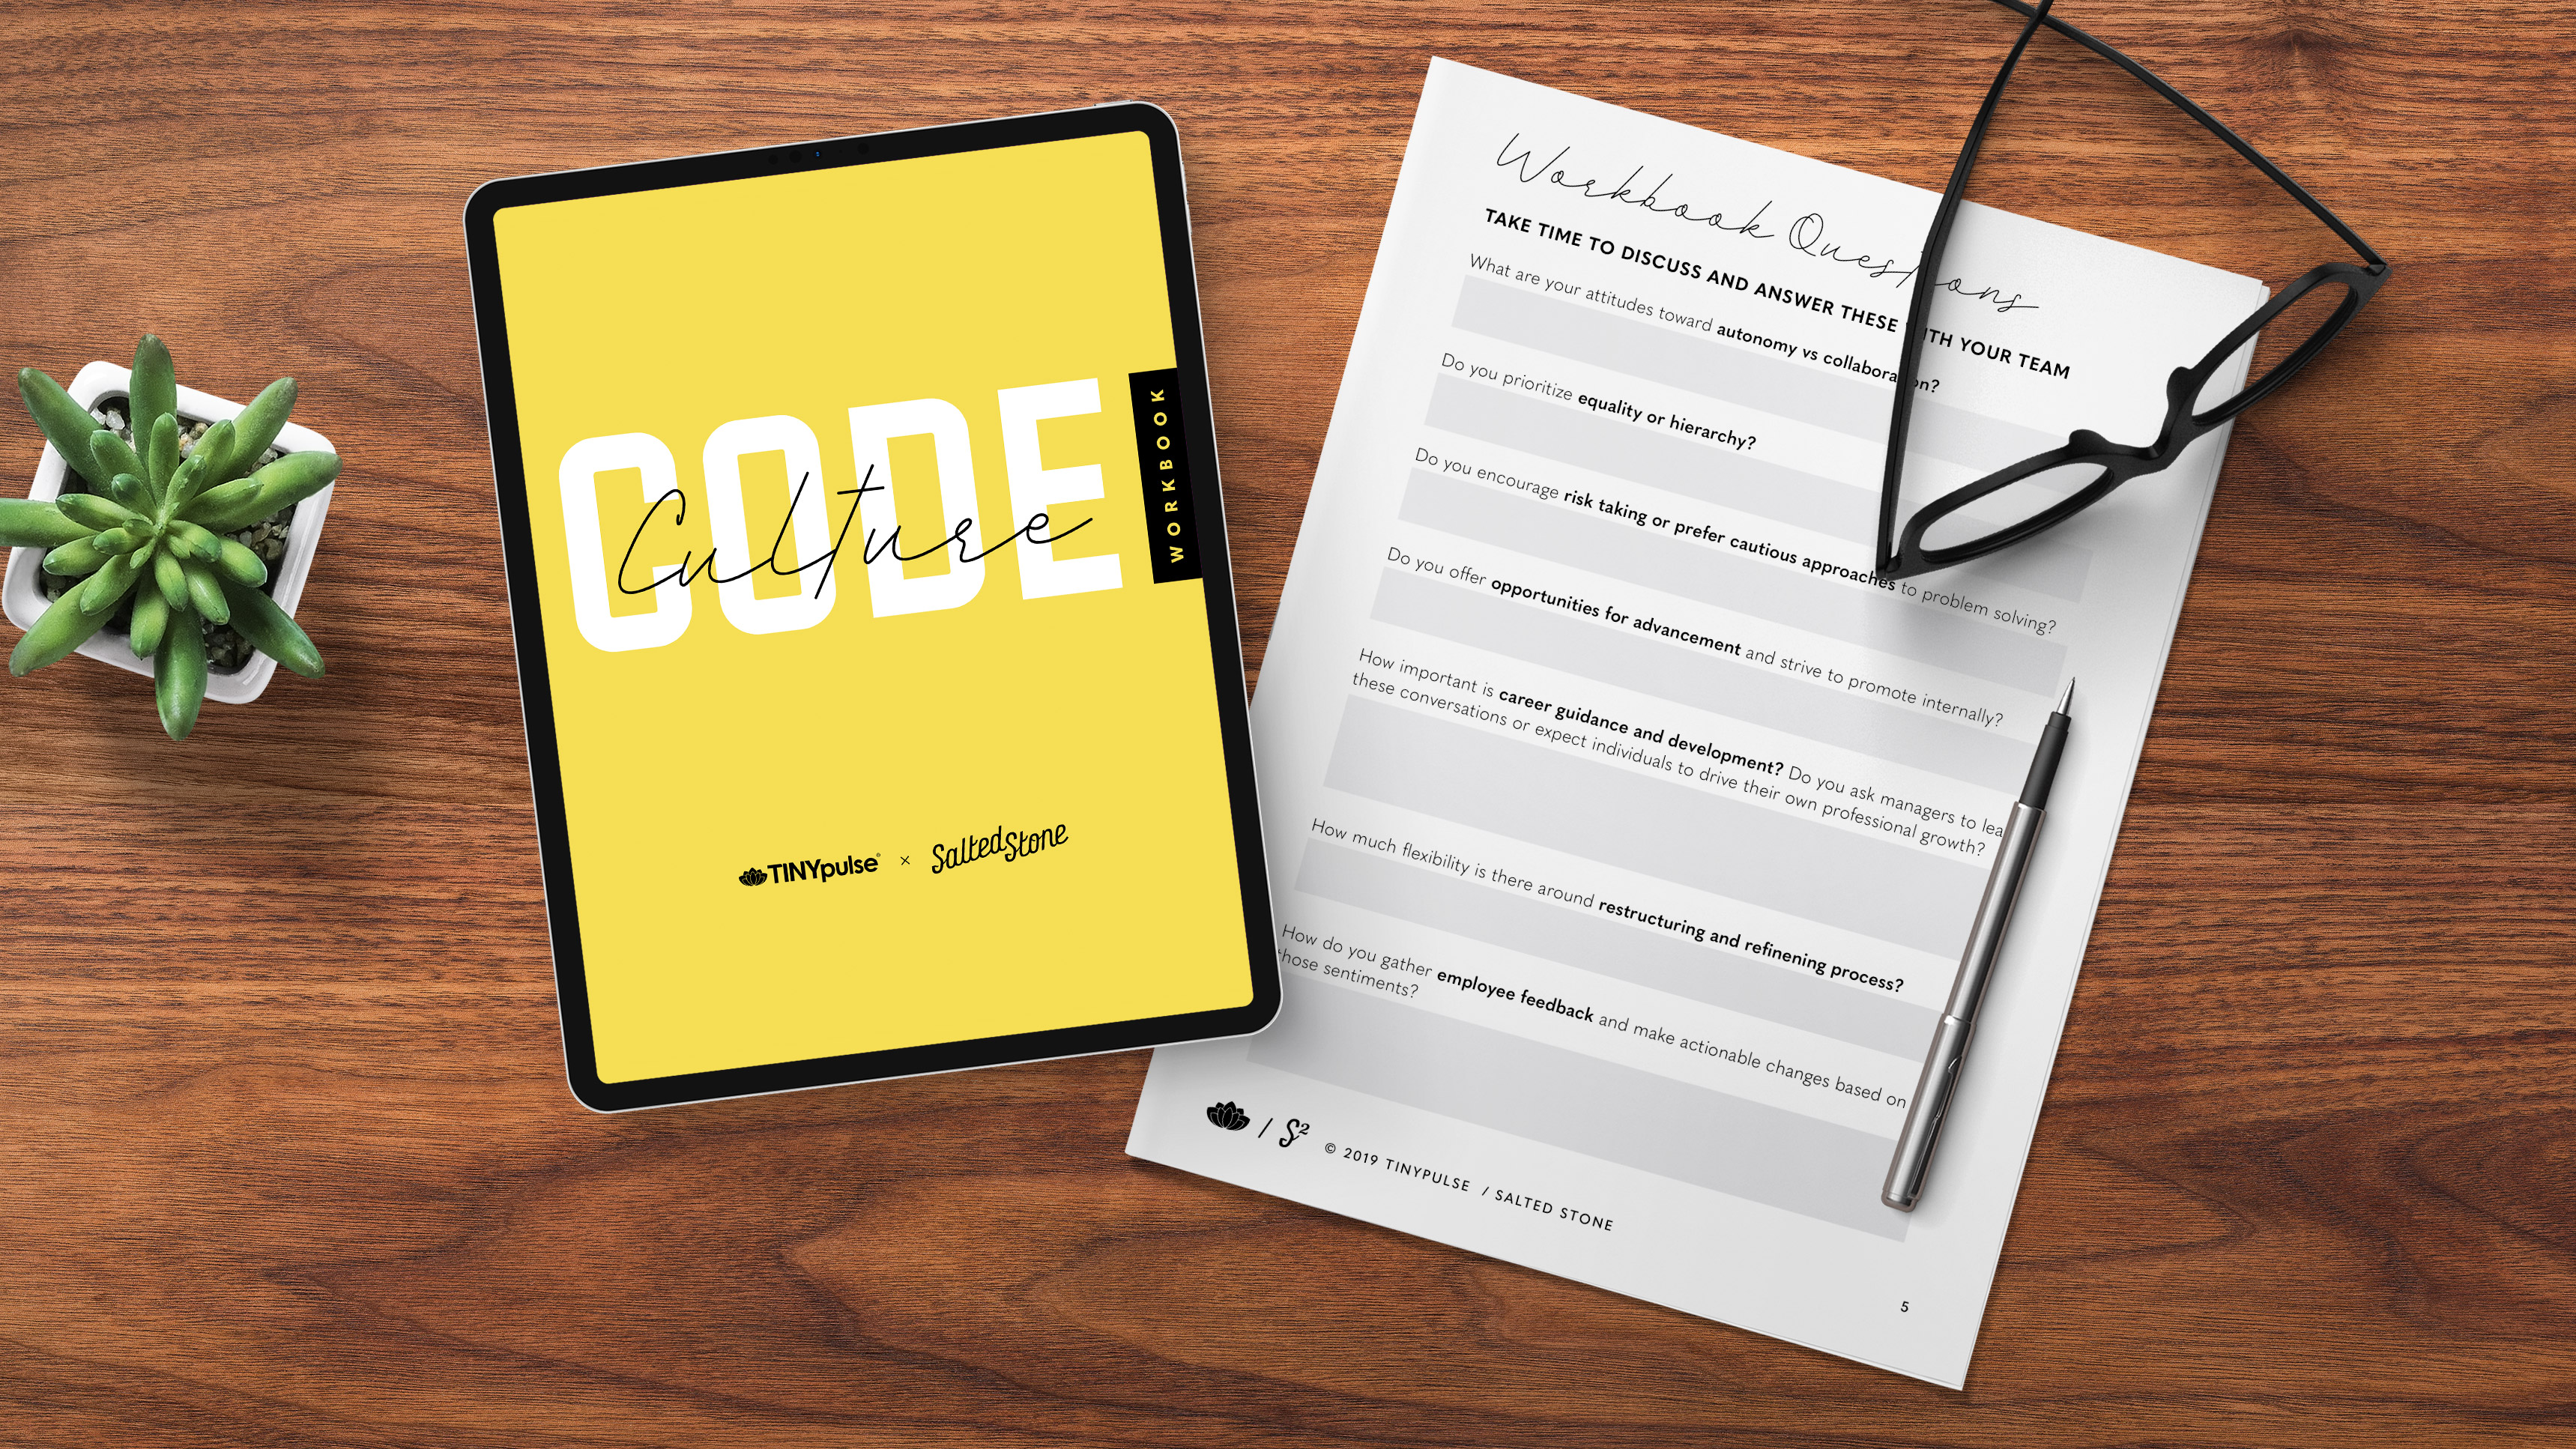 The Culture Code Workbook